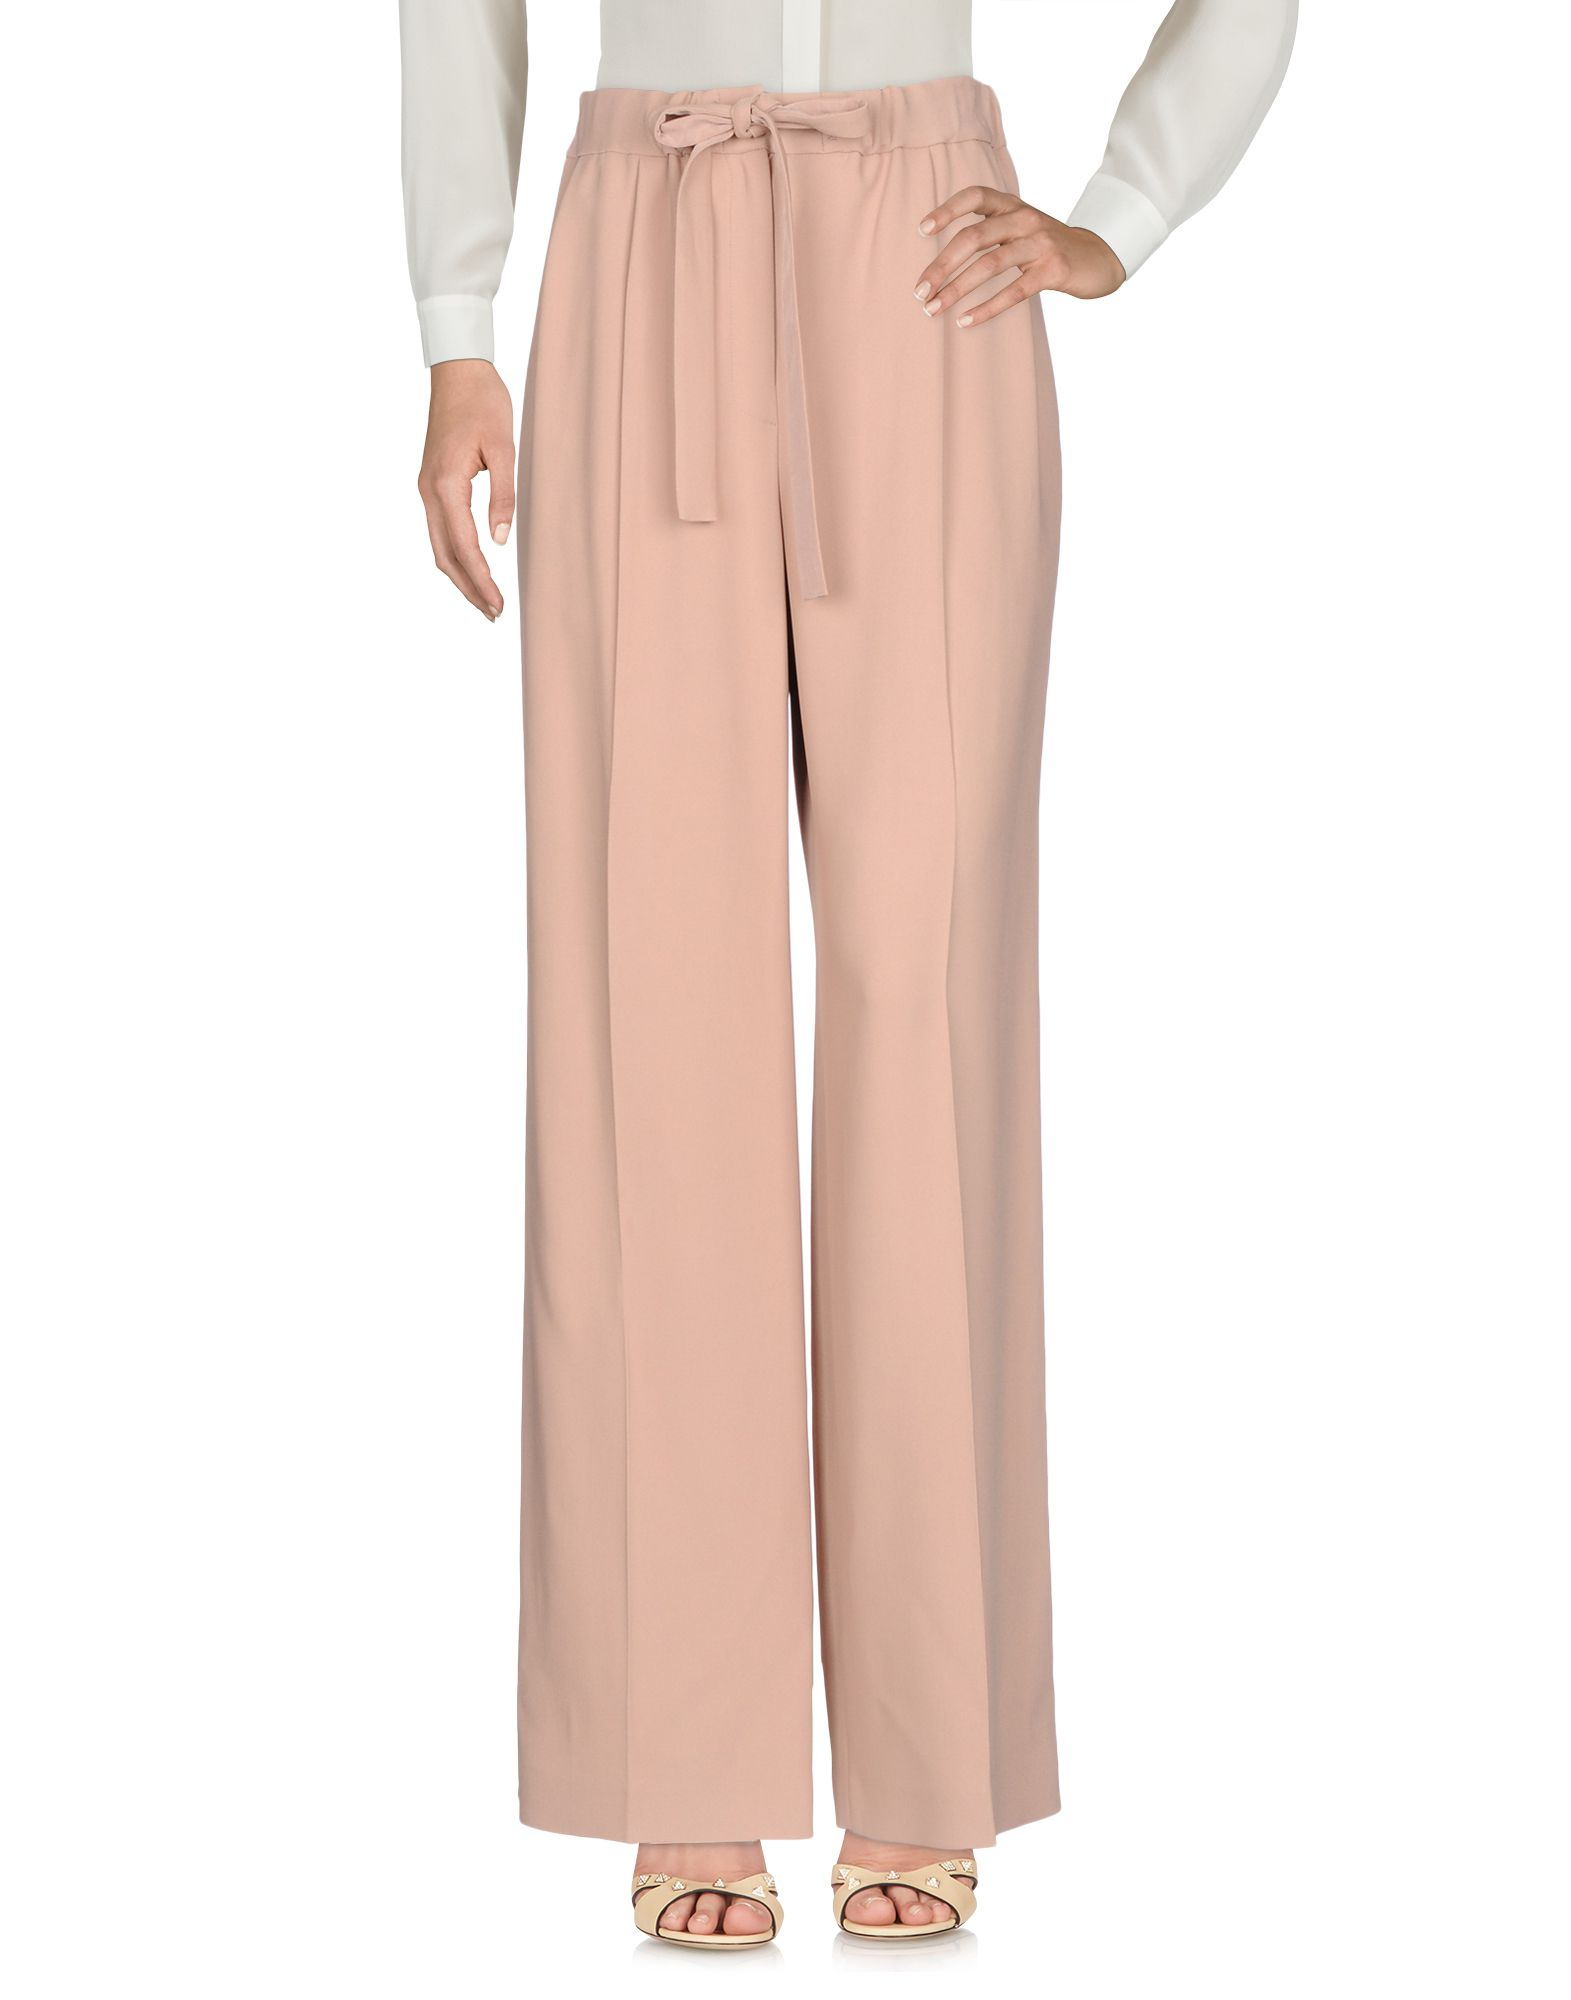 CYCLAS Casual Pants in Camel